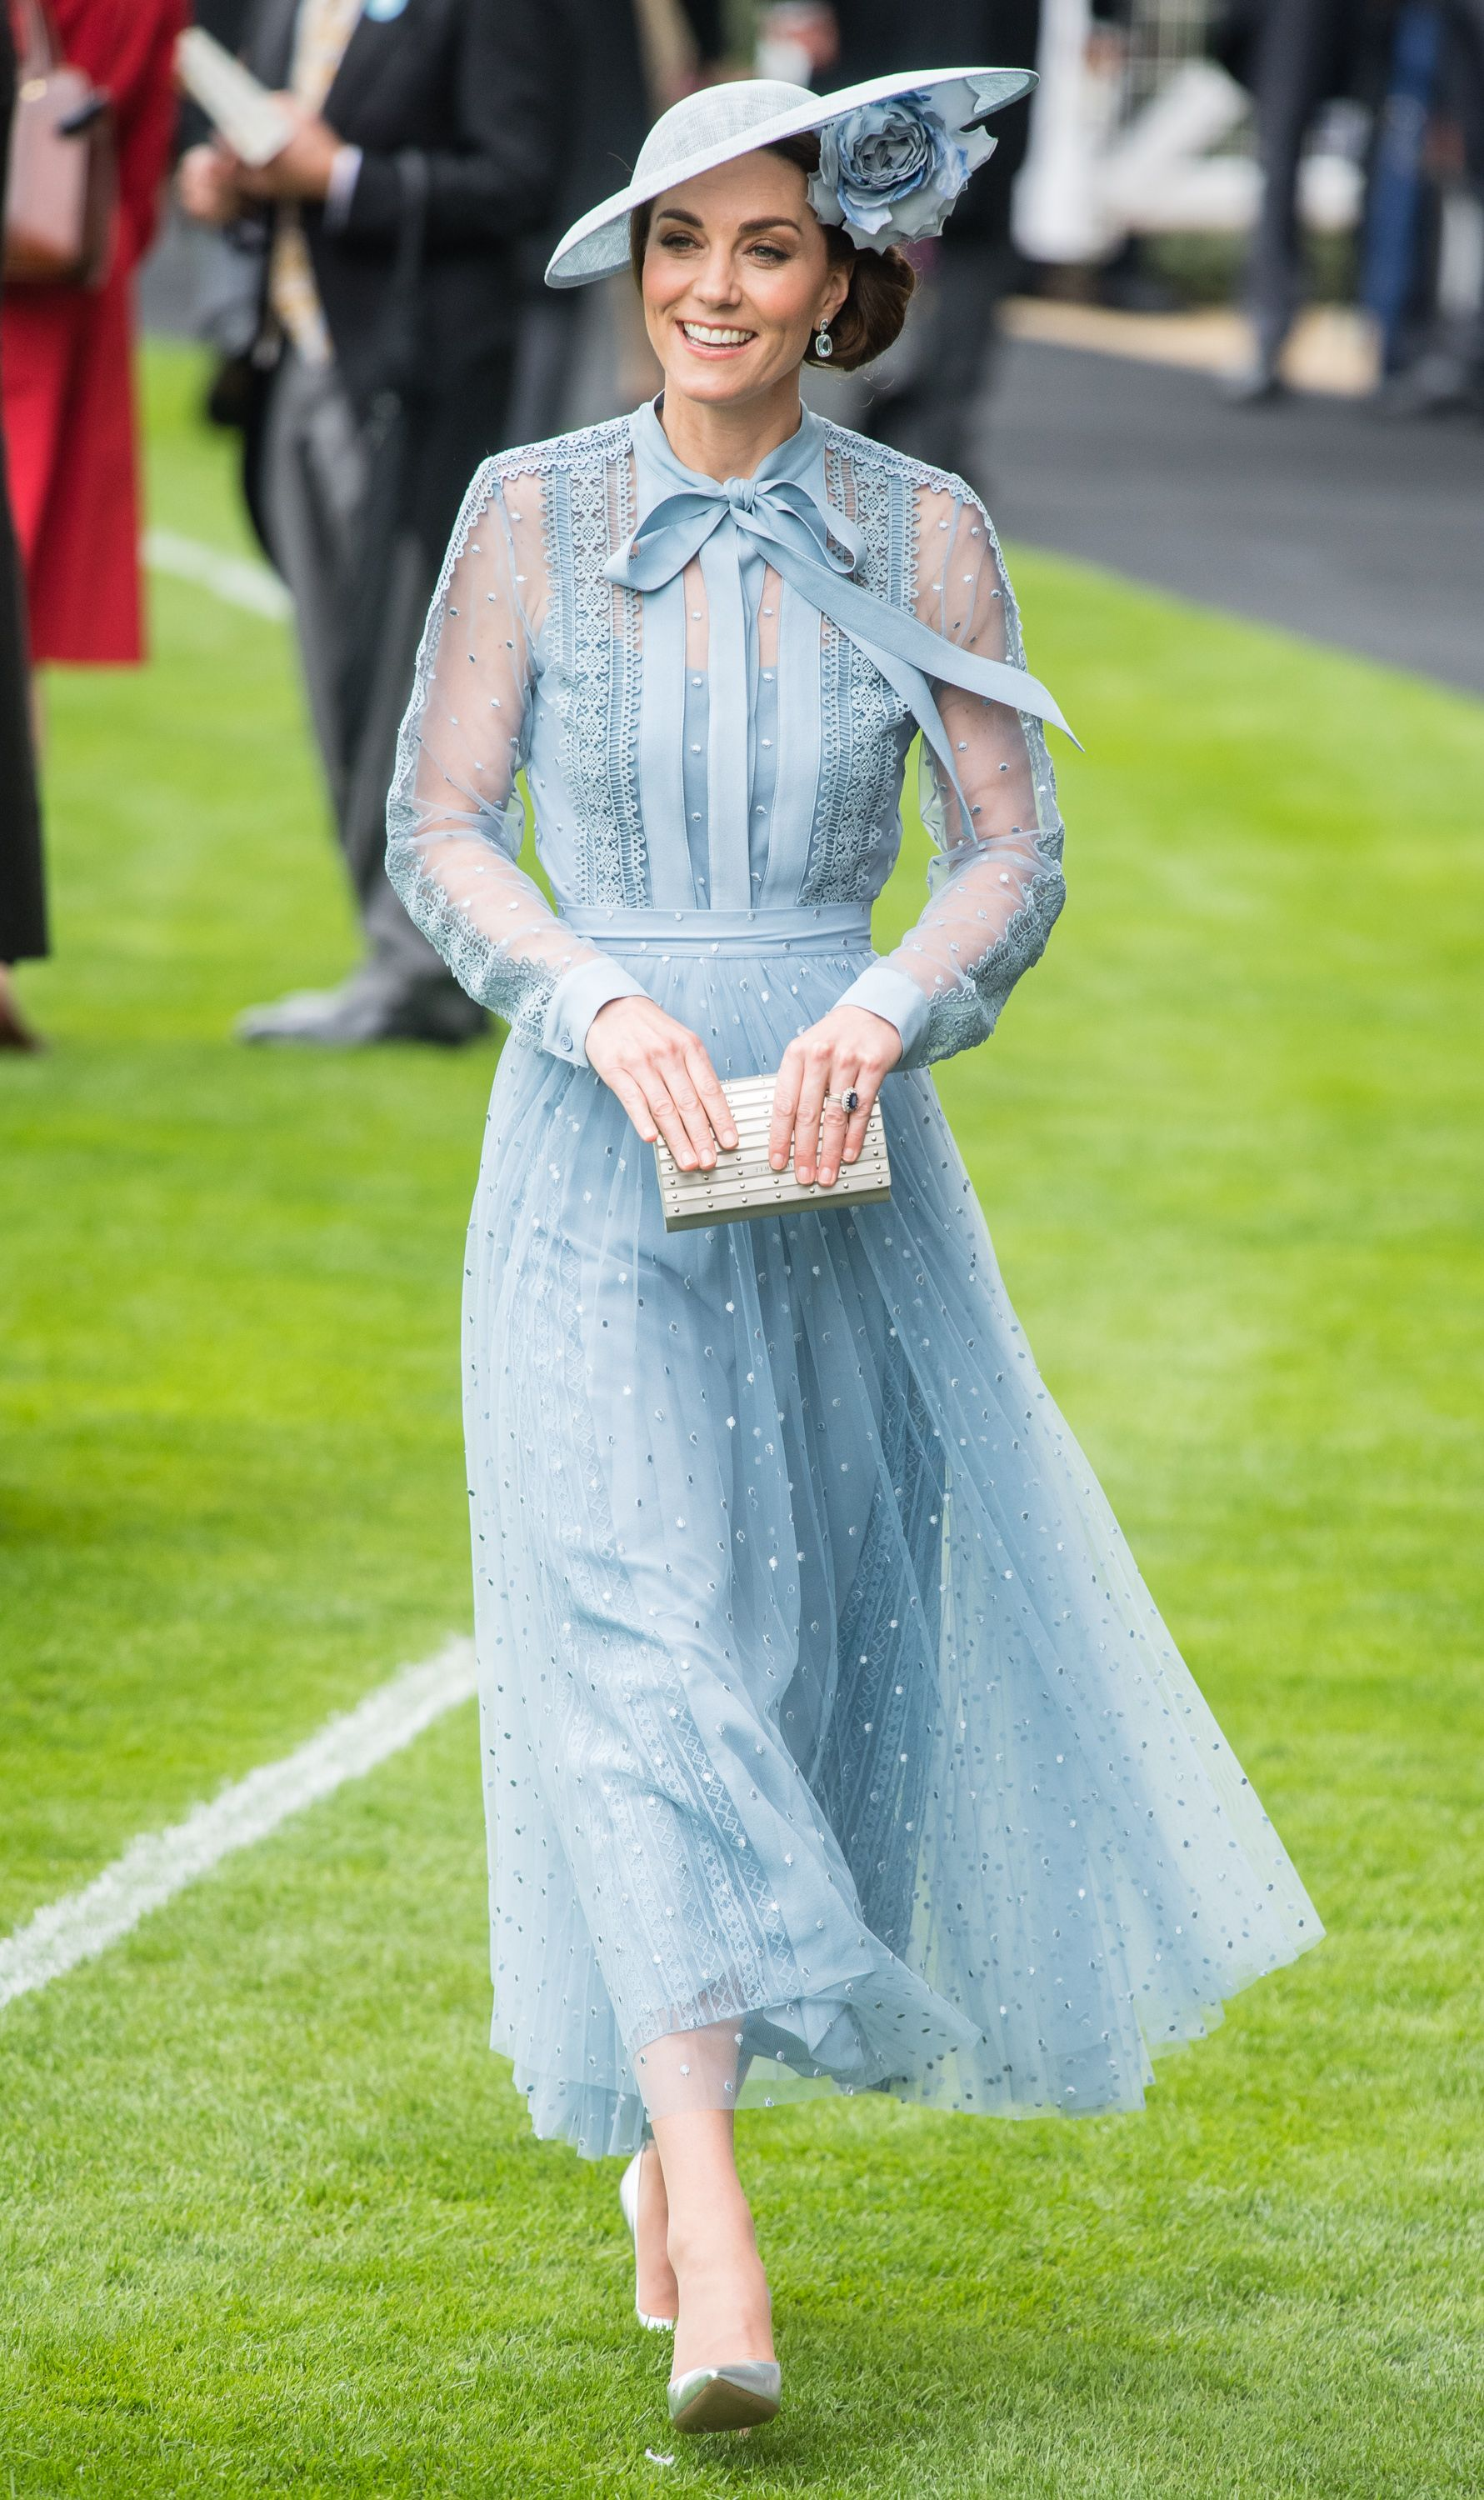 8b8c0a17 Kate Middleton's Best Fashion Looks - Duchess of Cambridge's Chic Outfits